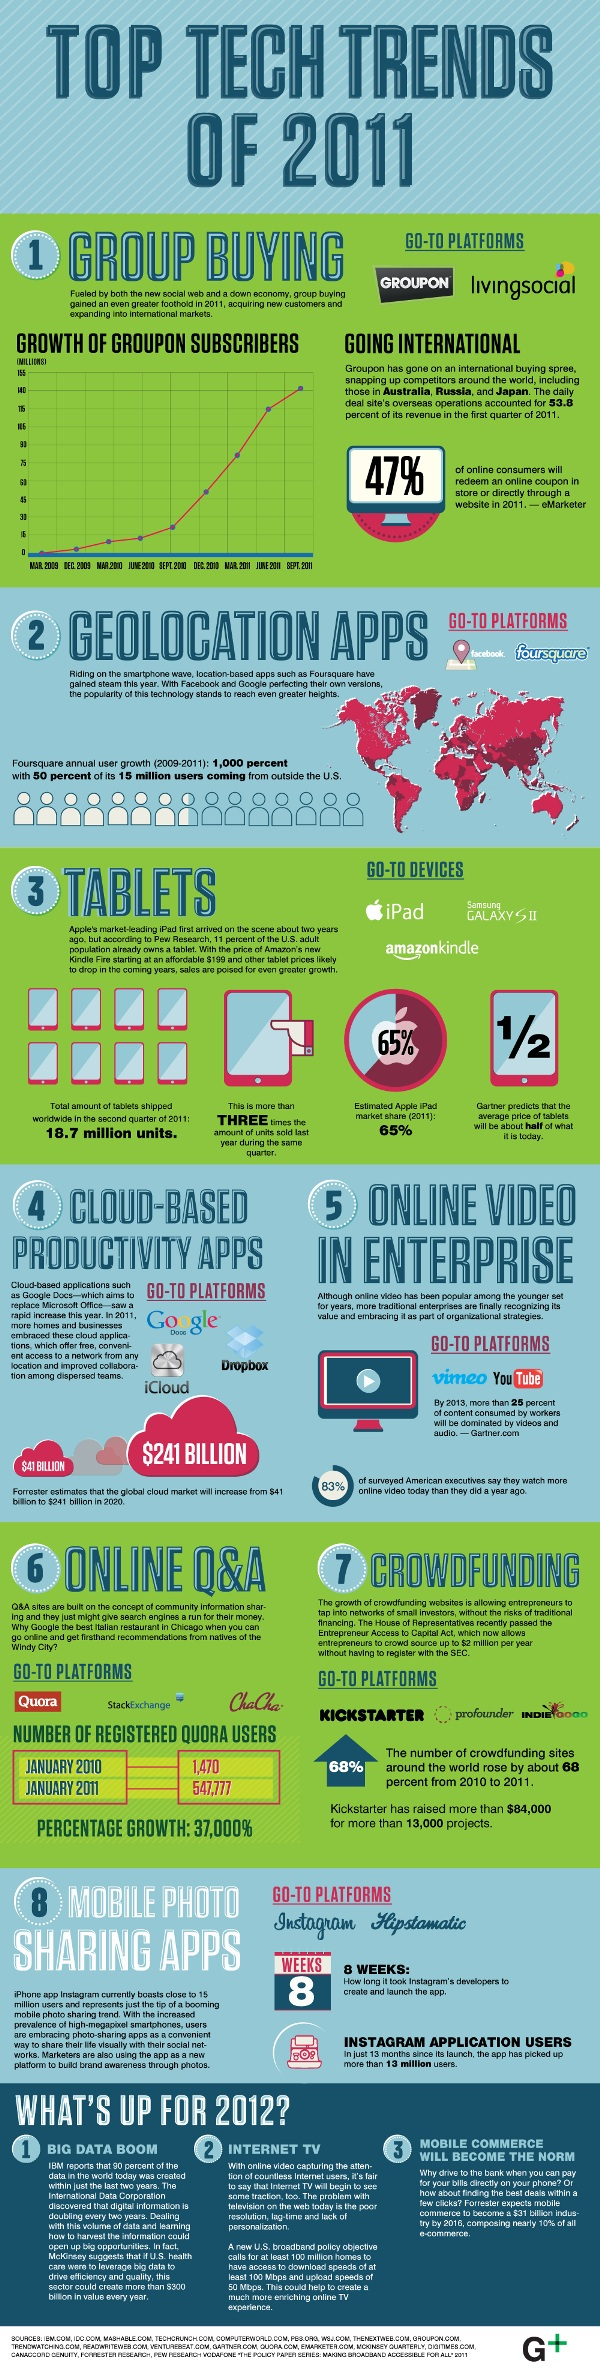 Top-Tech-Trends-of-2011